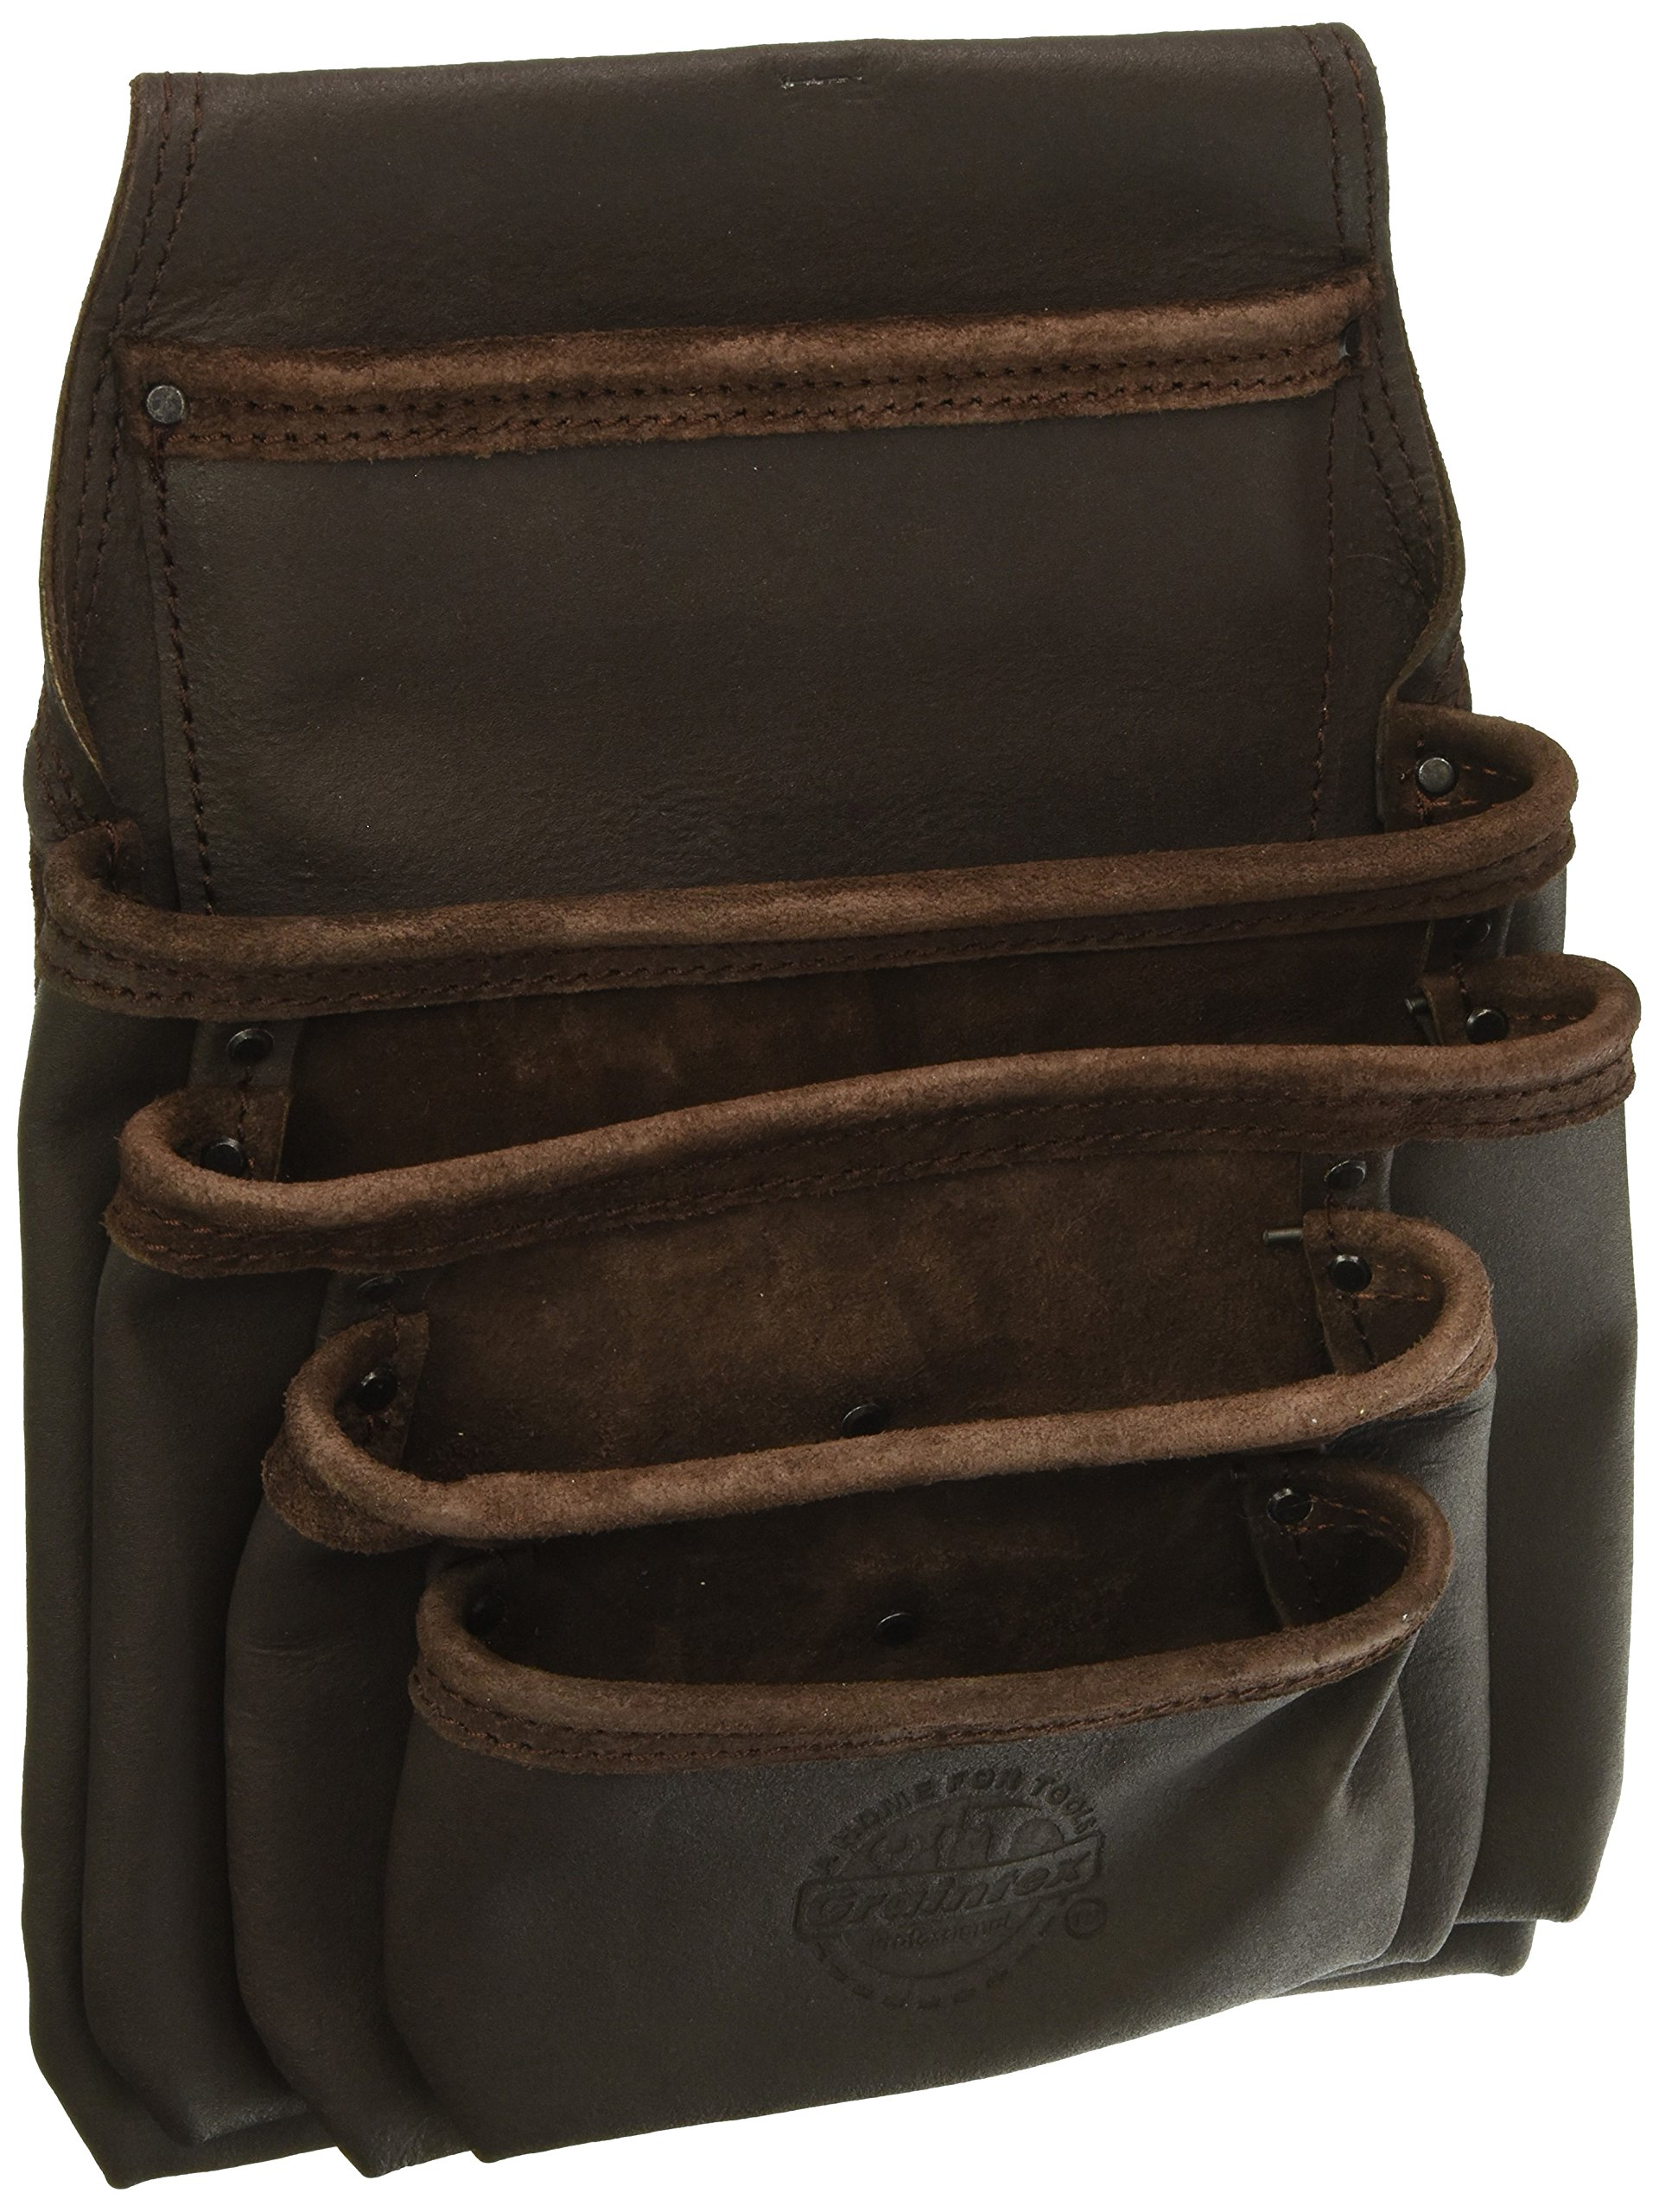 Graintex OS2052 5 Pocket Oil Tanned Leather Nail & Tool Pouch